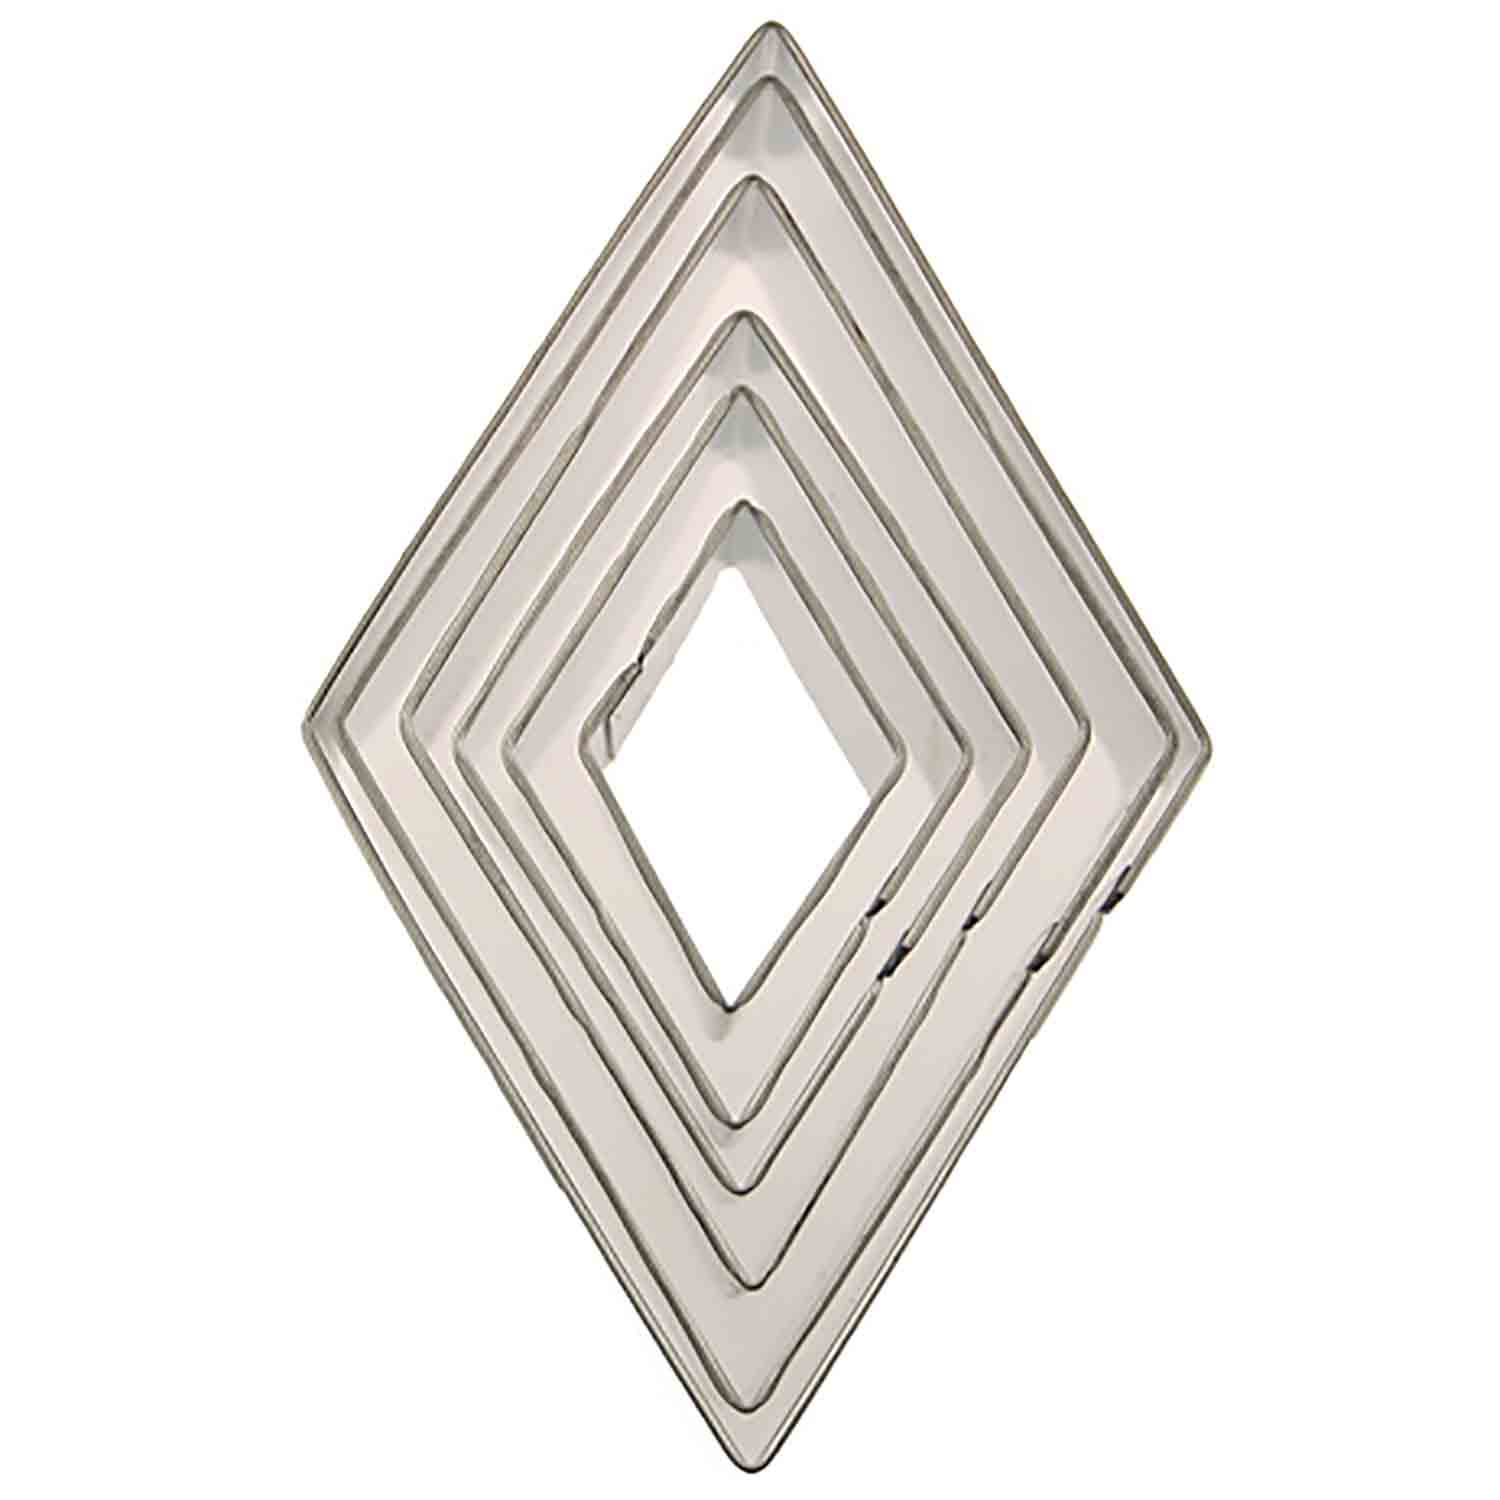 Diamond Shaped Cookie Cutter